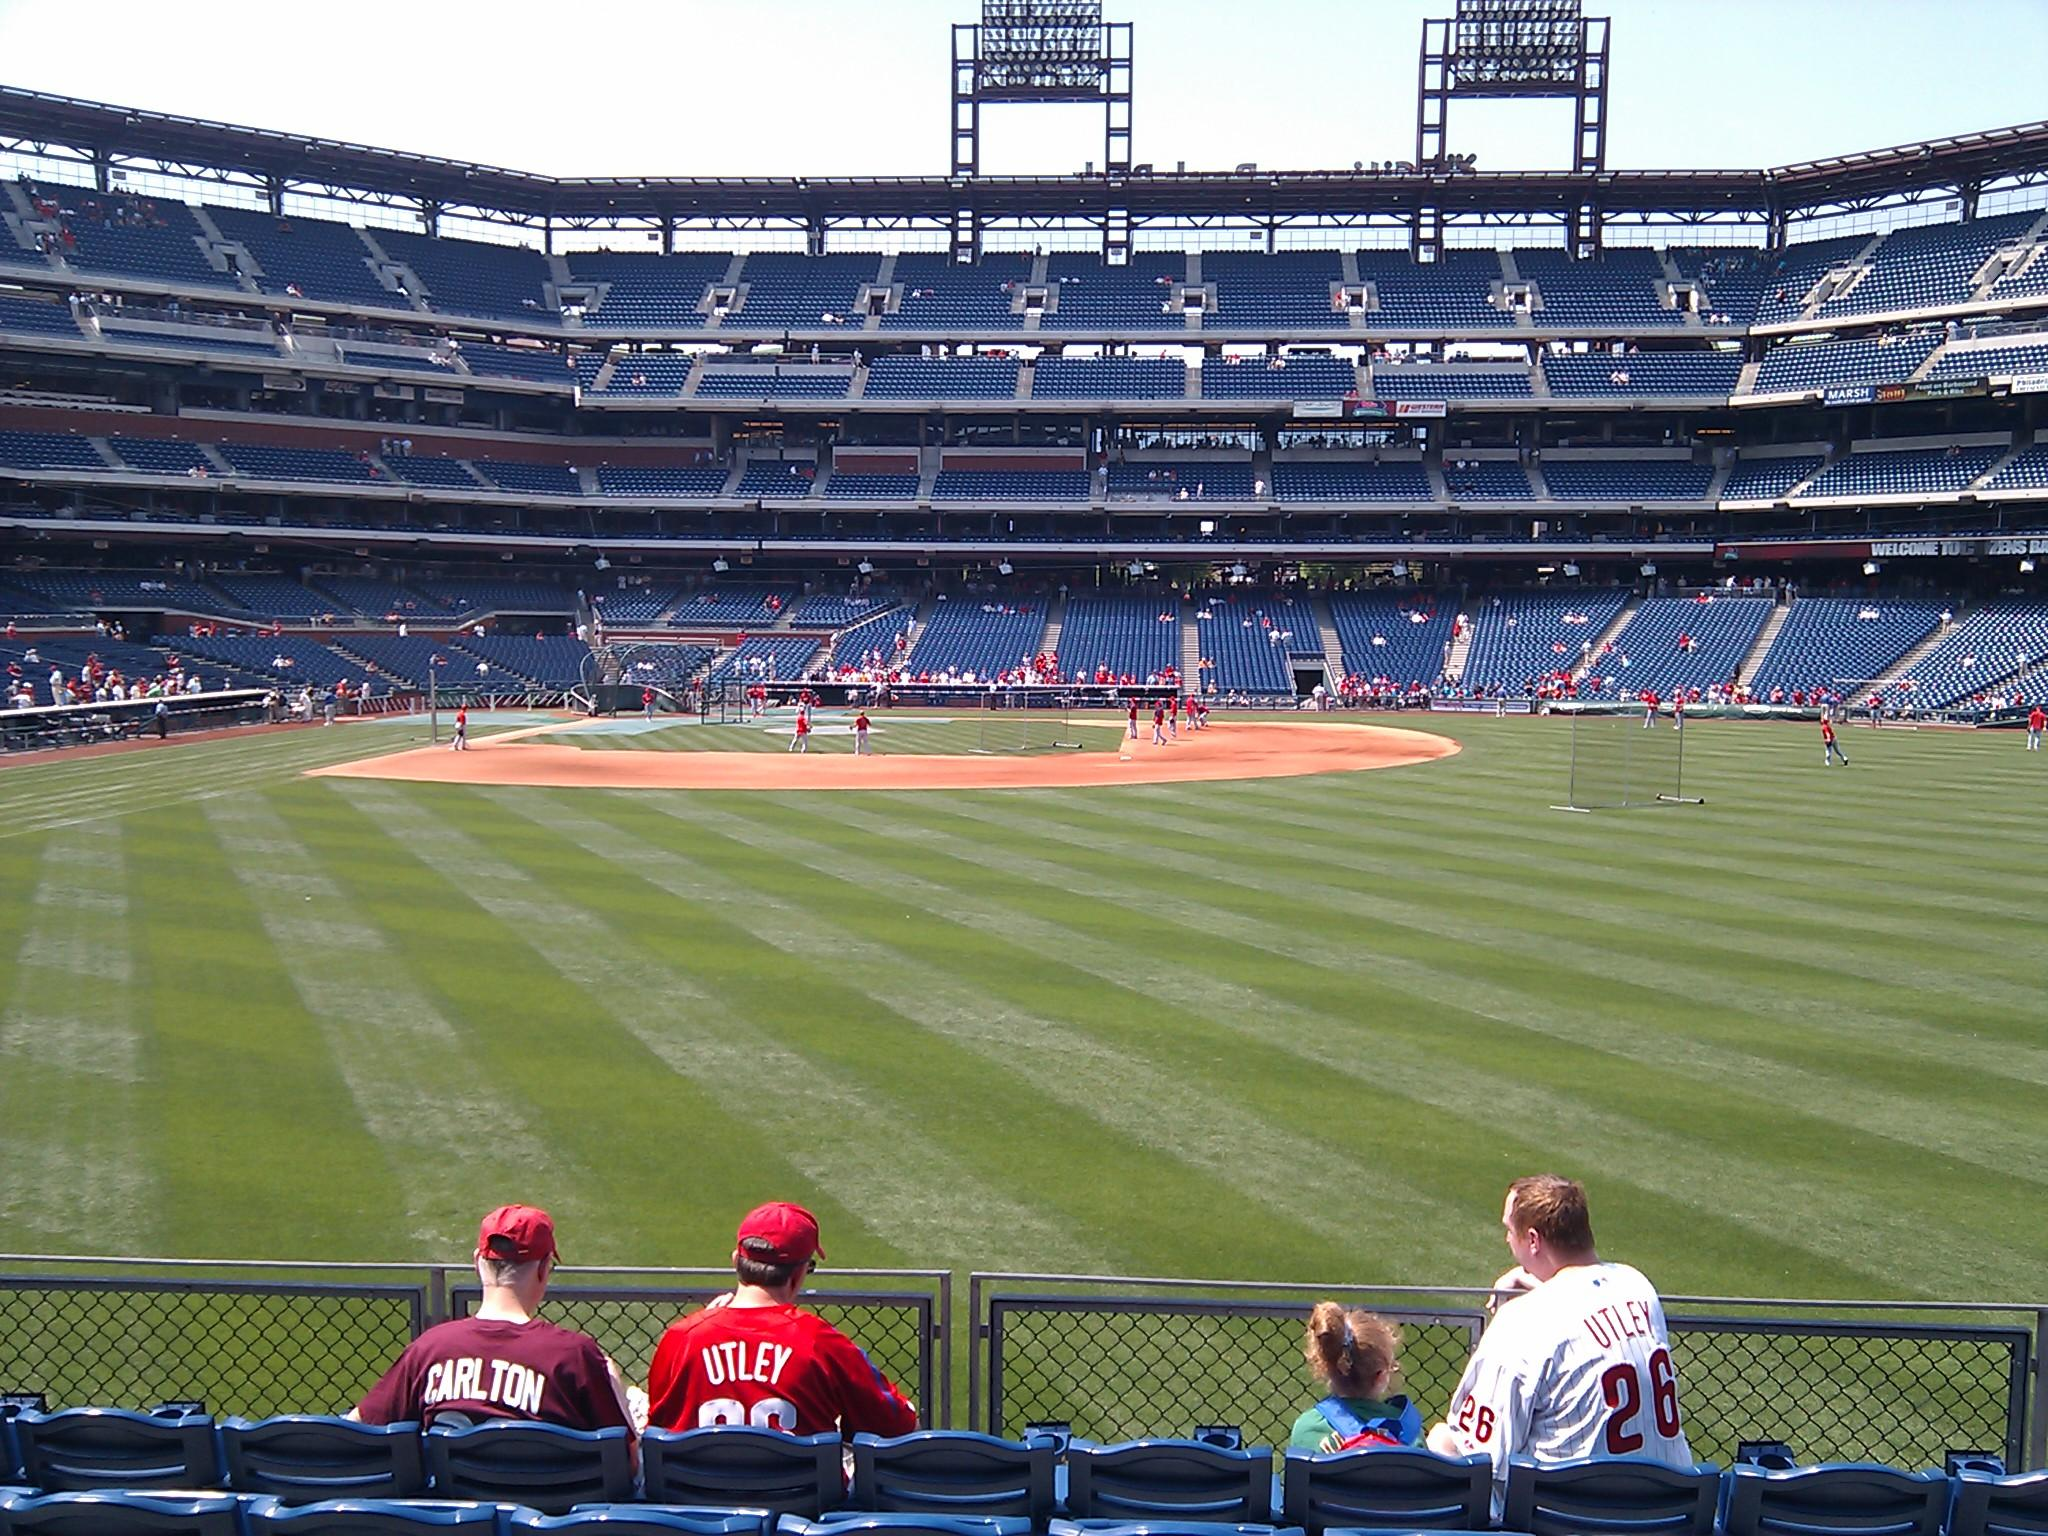 Citizens Bank Park Section 104 Row 7 Seat 12